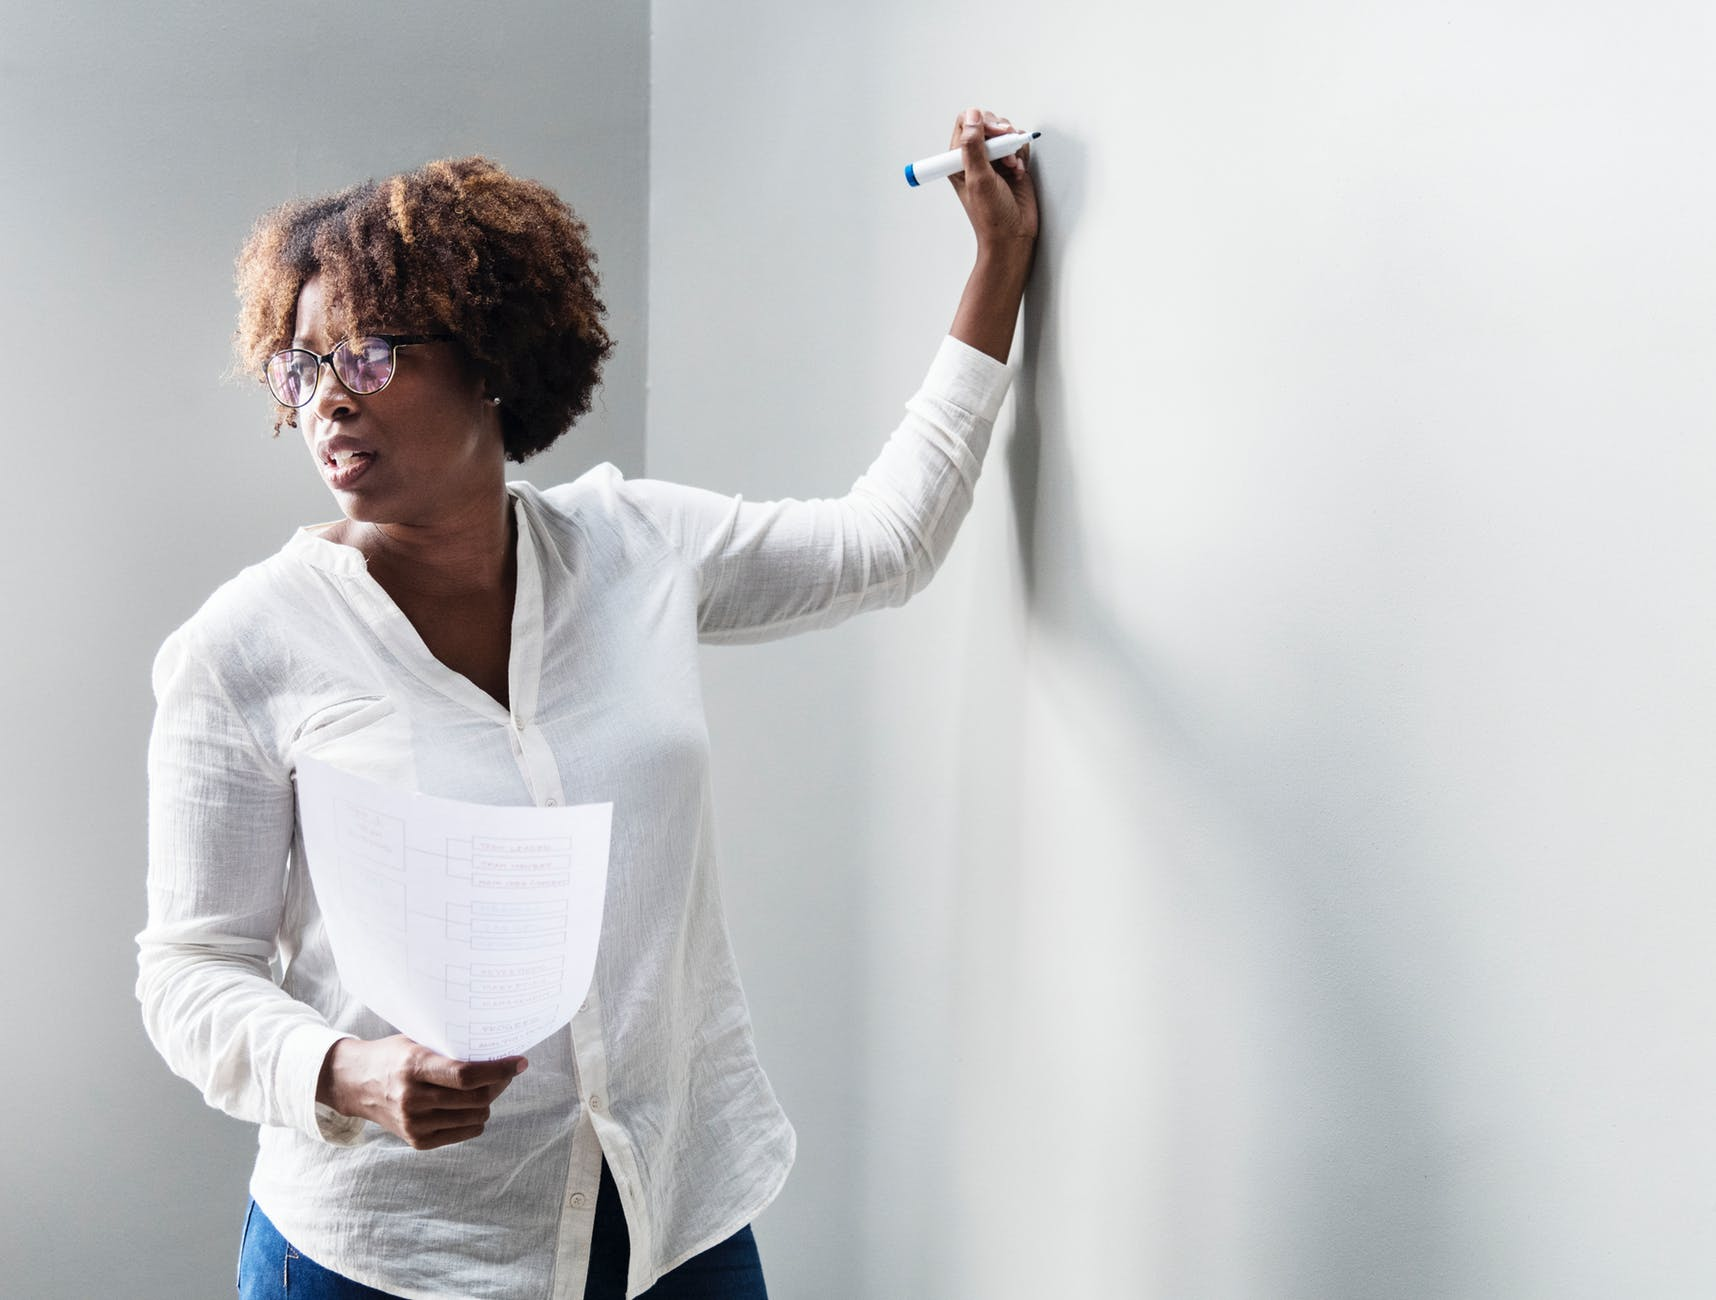 A photo of a black woman with glasses in professional attire, paper in hand, teaching while writing with a marker.